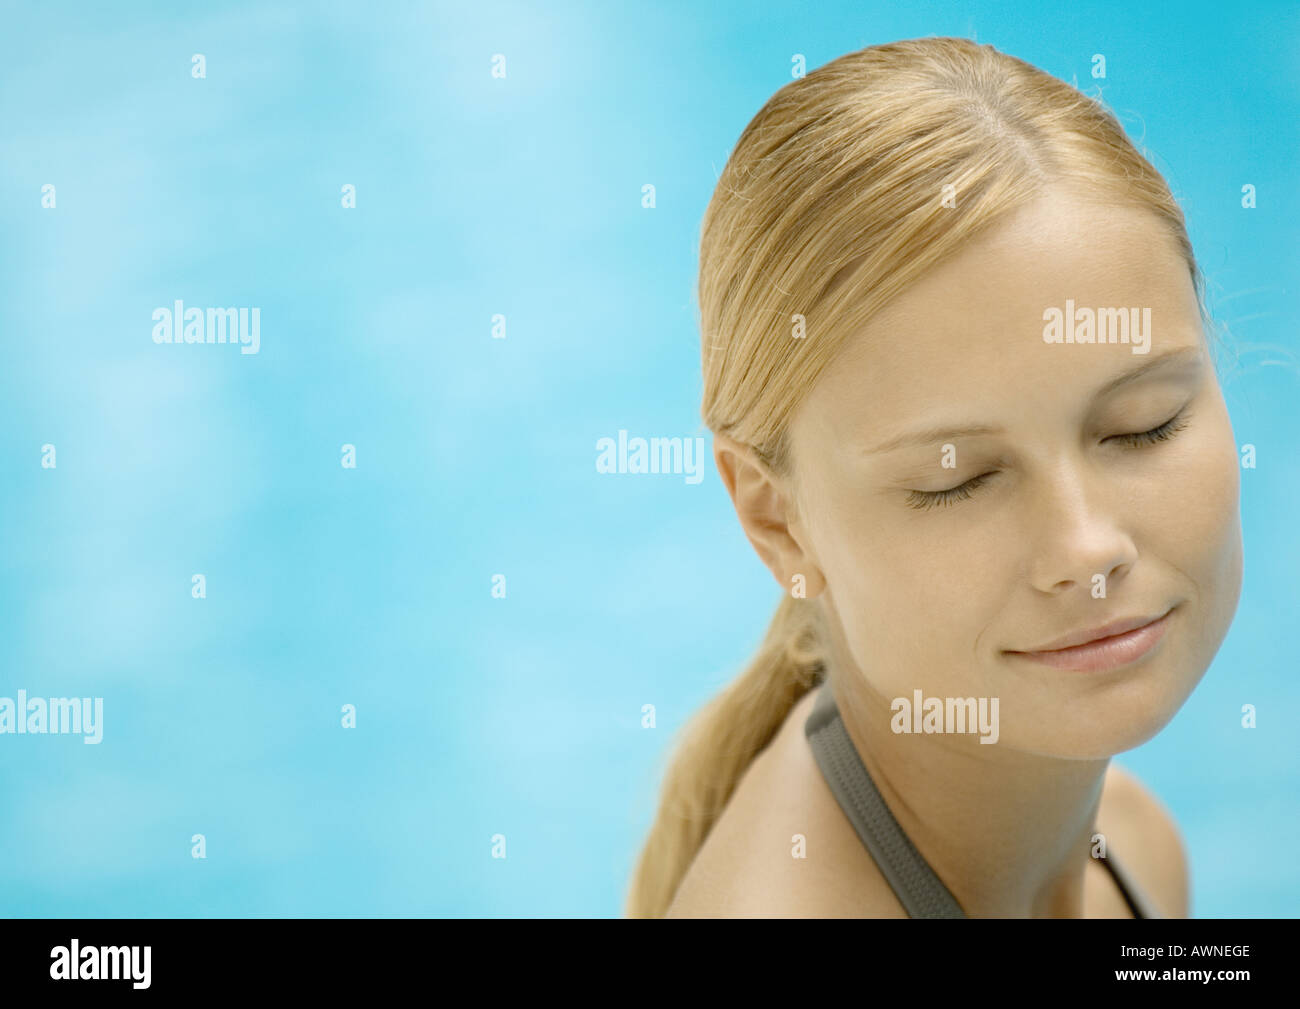 Woman smiling with eyes closed, water in background - Stock Image